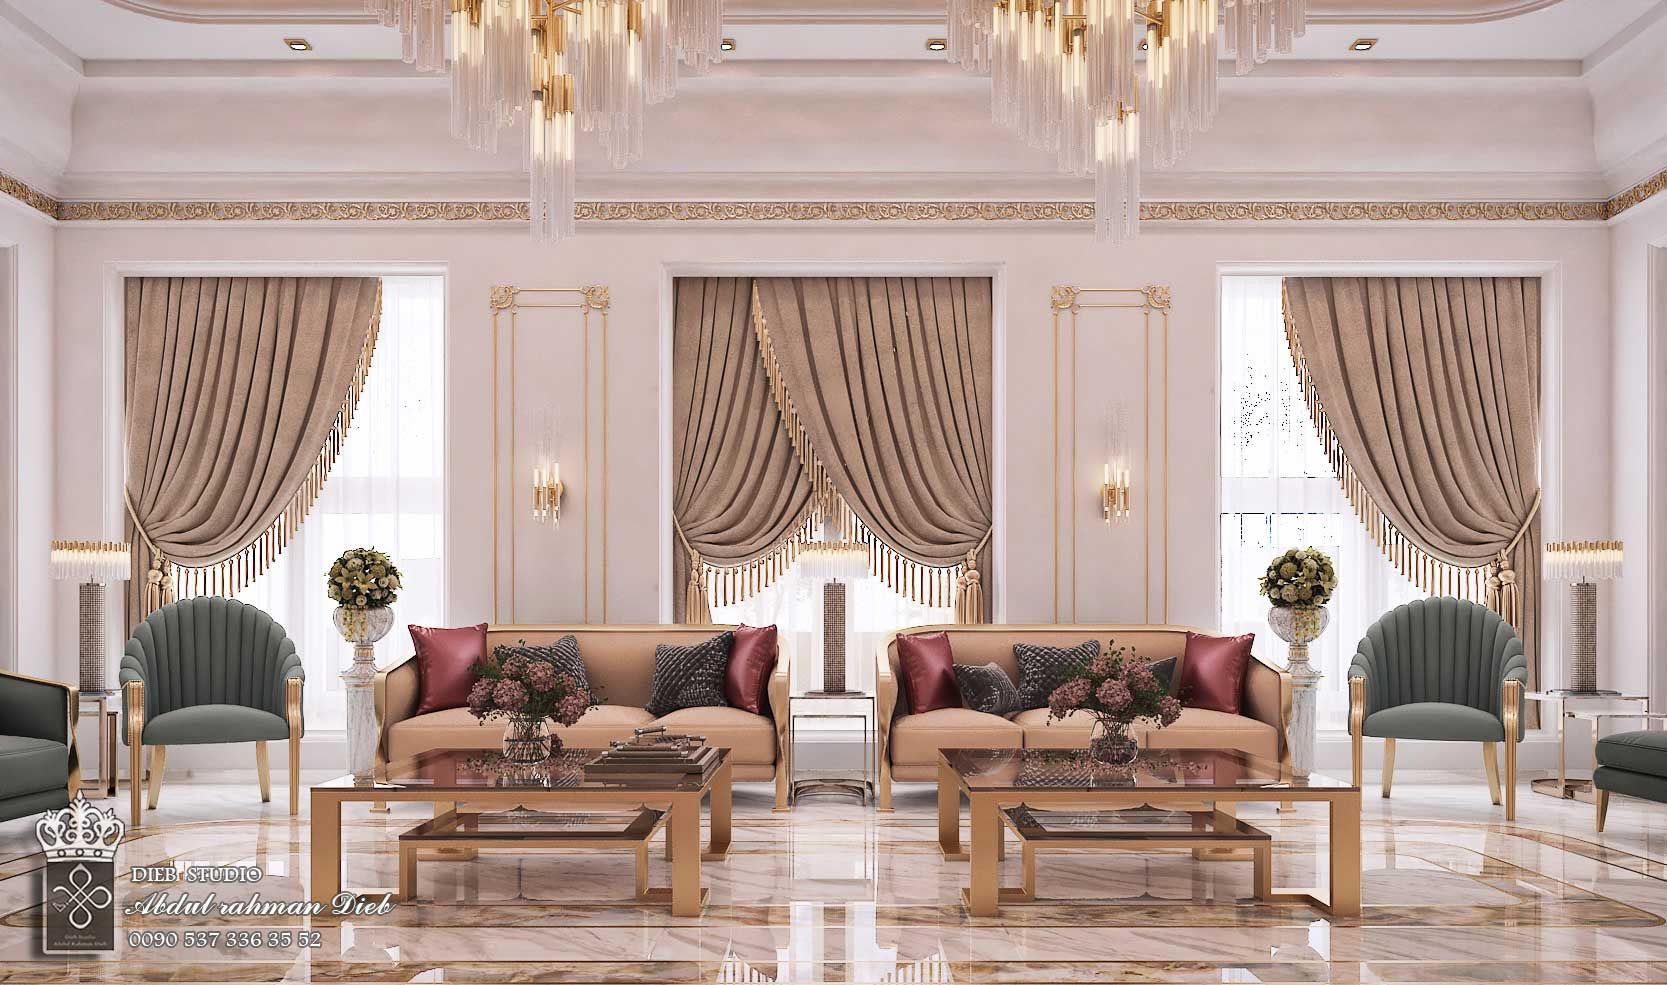 Men Majles In Modern Style Ksa Classic Interior Design Living Room Luxury Mansions Interior Elegant Living Room Design